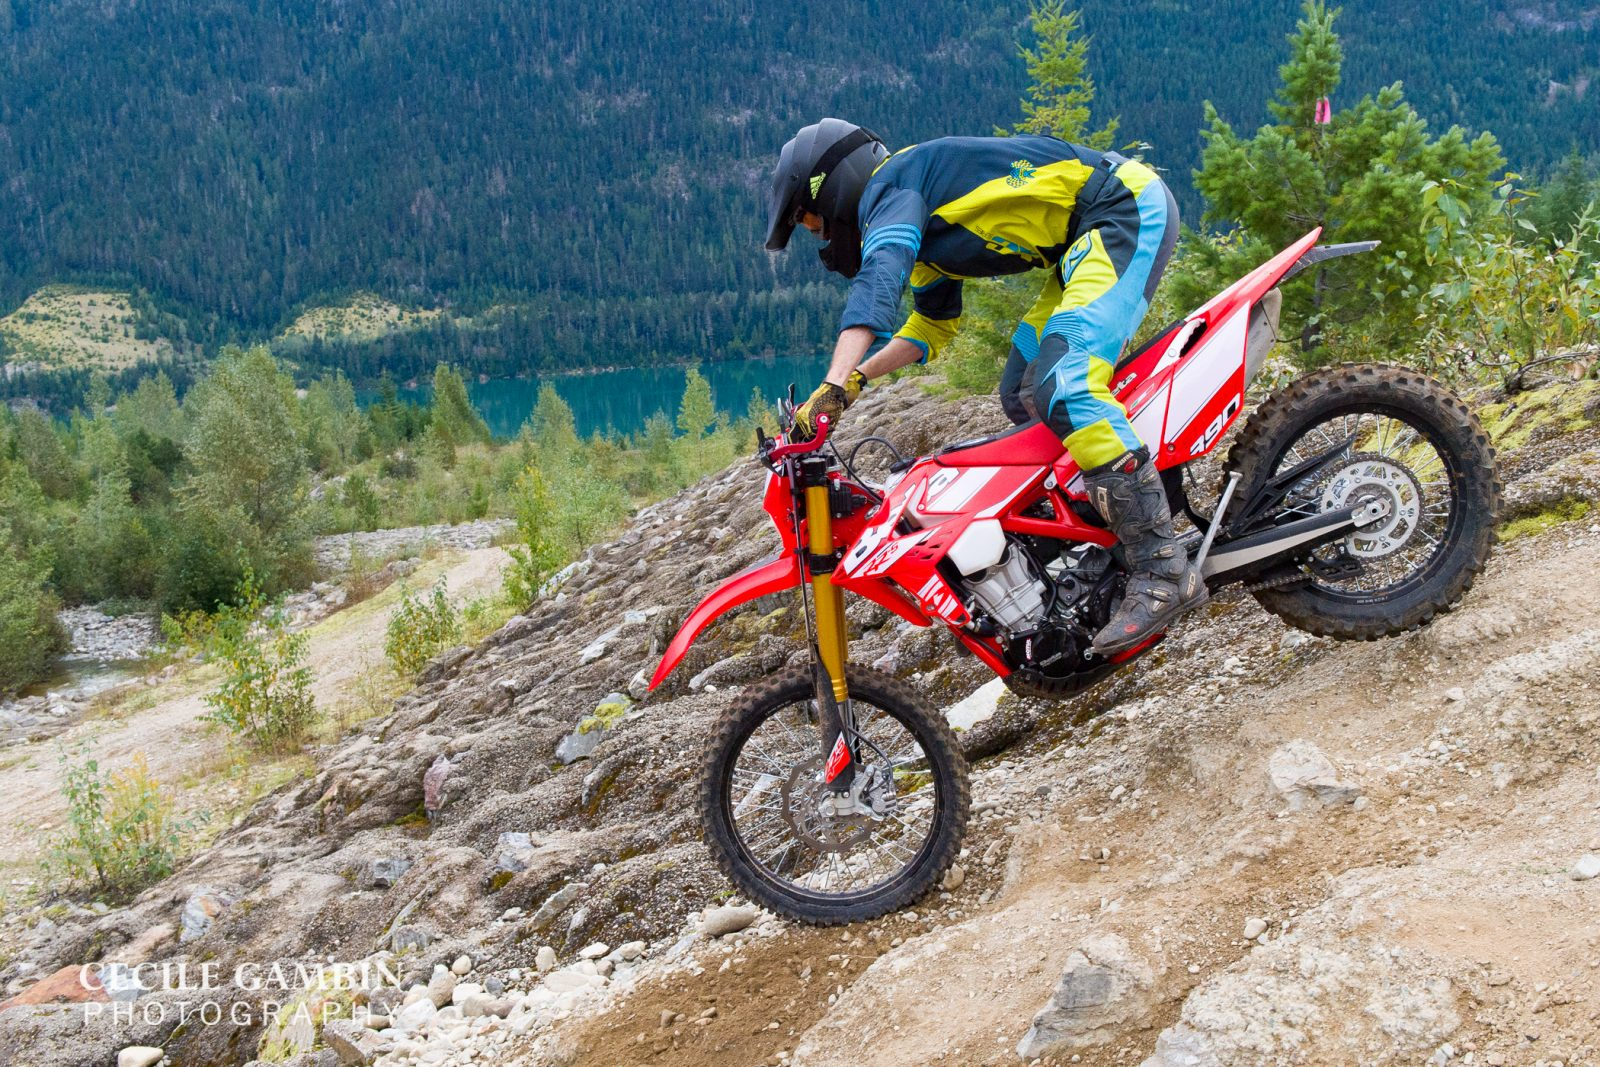 The Revy Riders Dirt Bike Club created trails abundant in views, rock, trees, and roots. Awesome-sauce.